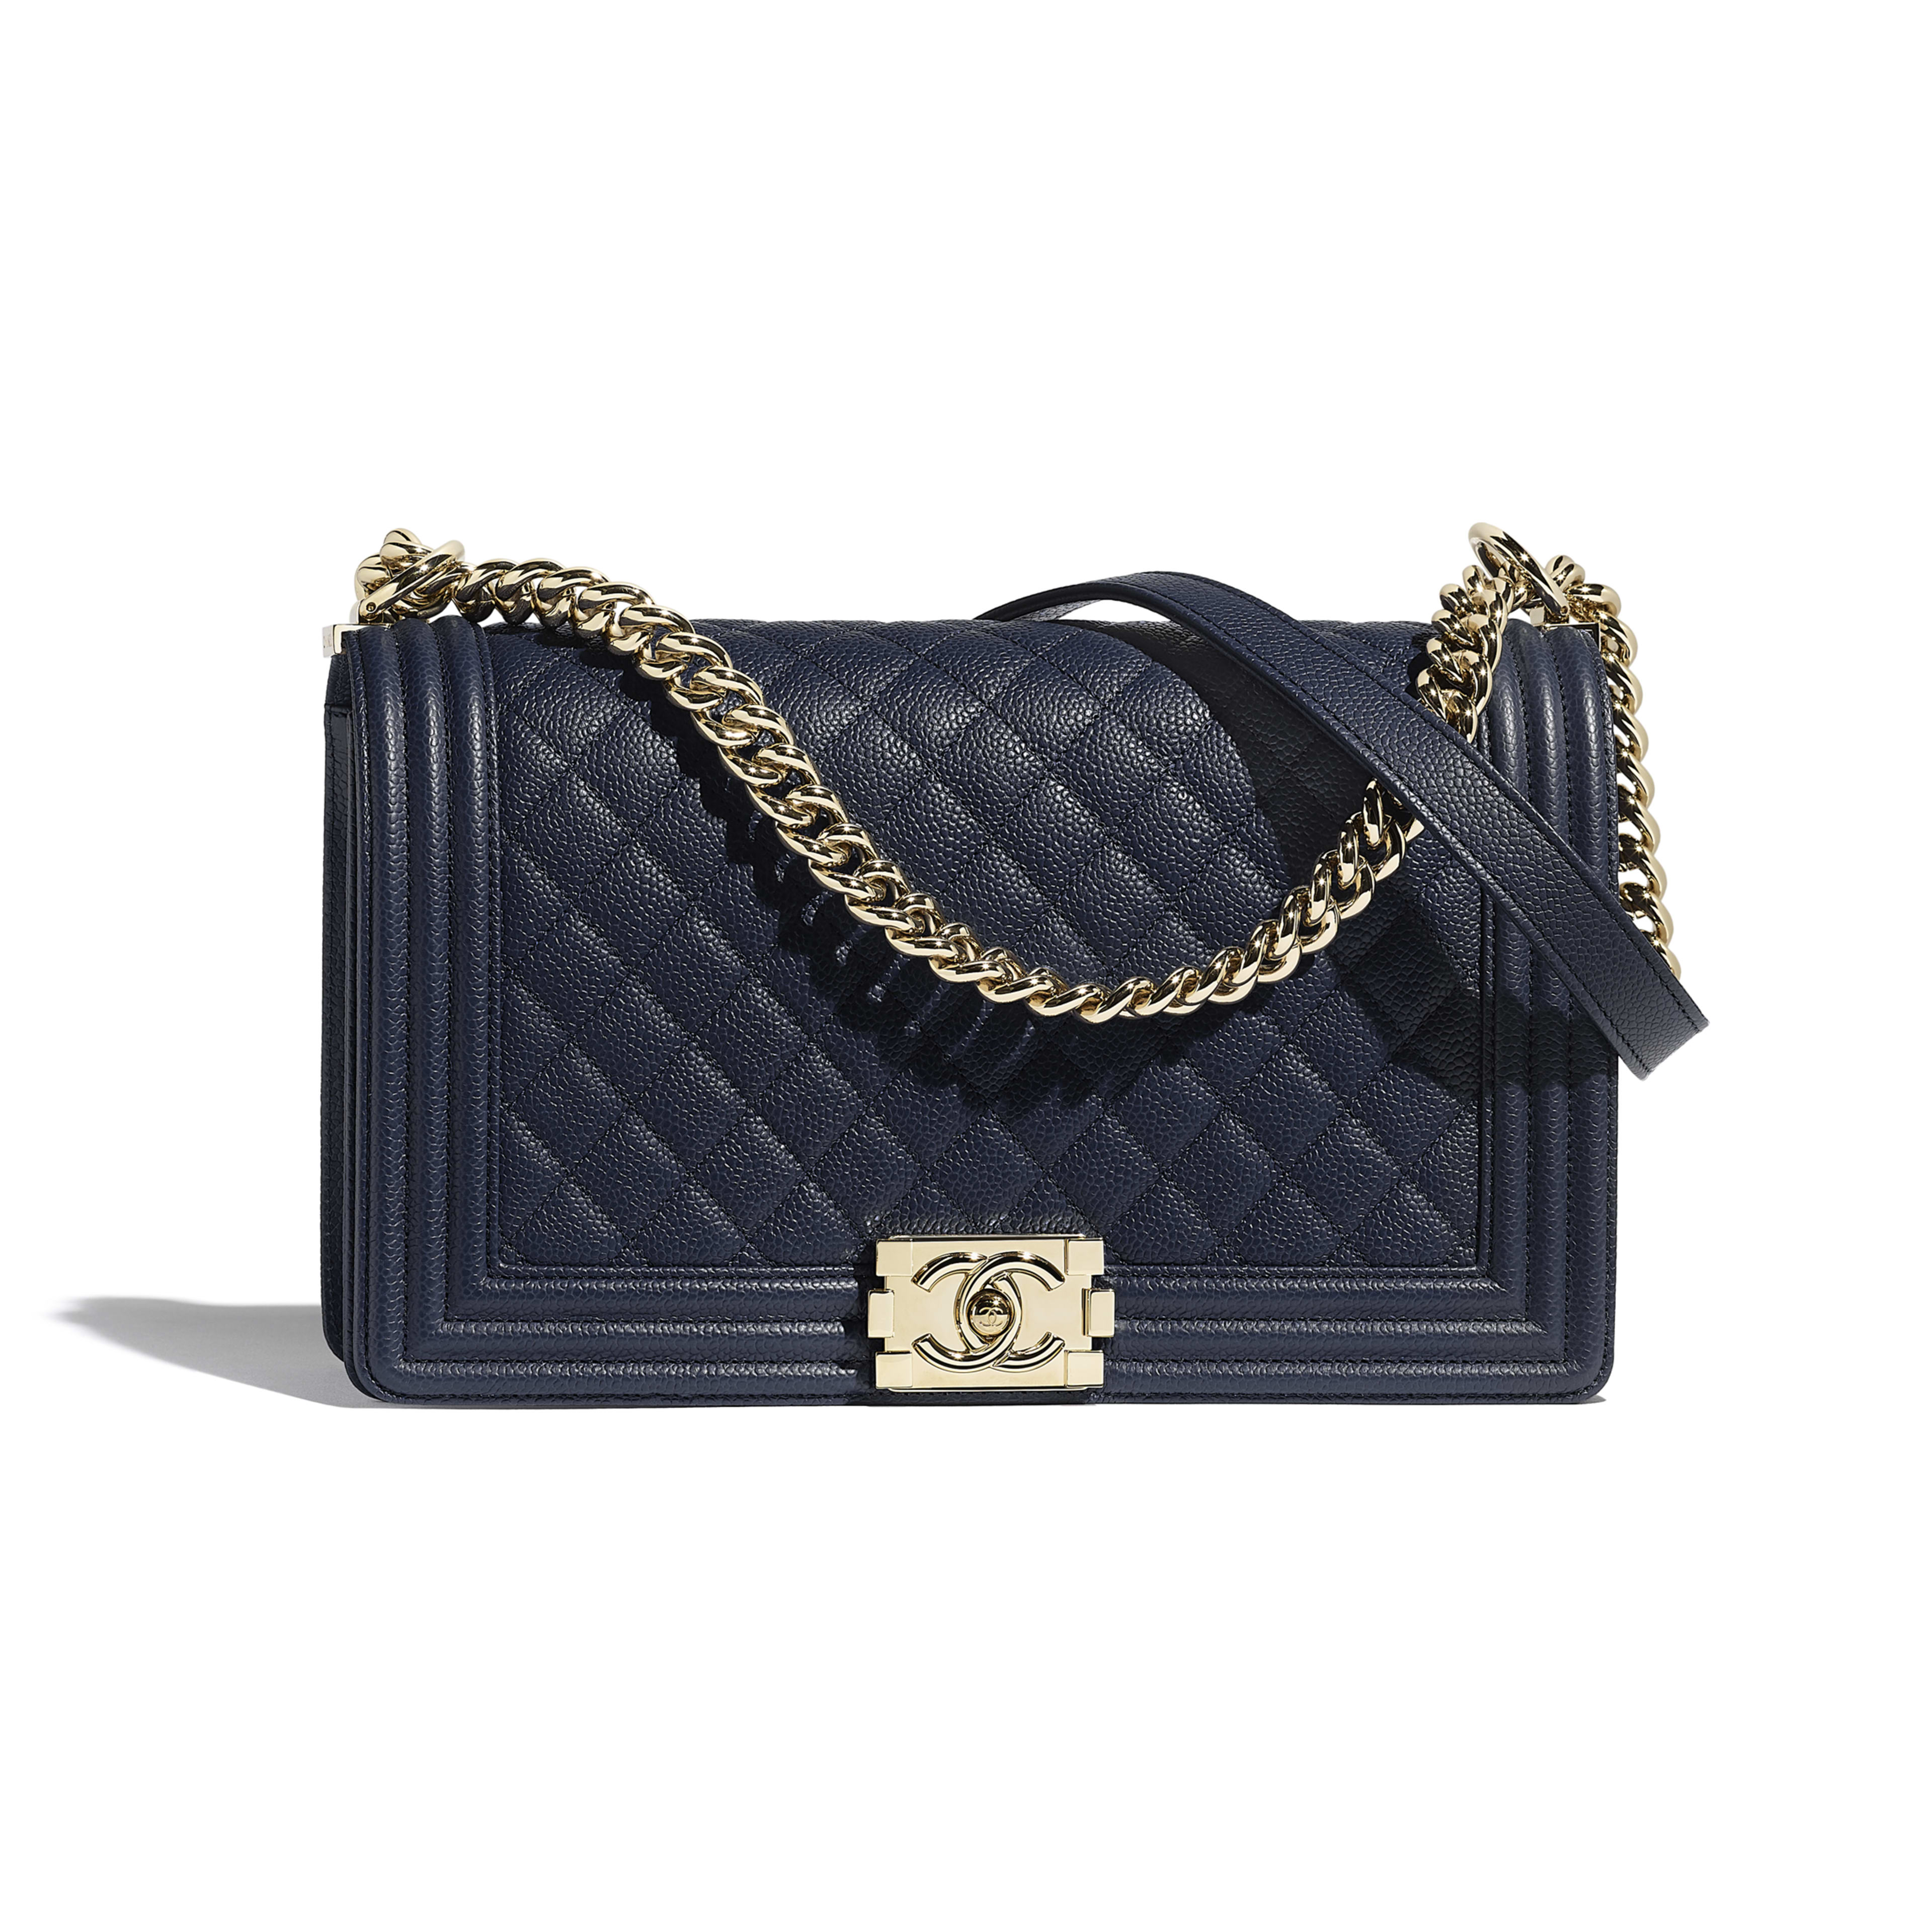 Large BOY CHANEL Handbag by Chanel, available on chanel.com for $5500 Jordyn Woods Bags Exact Product